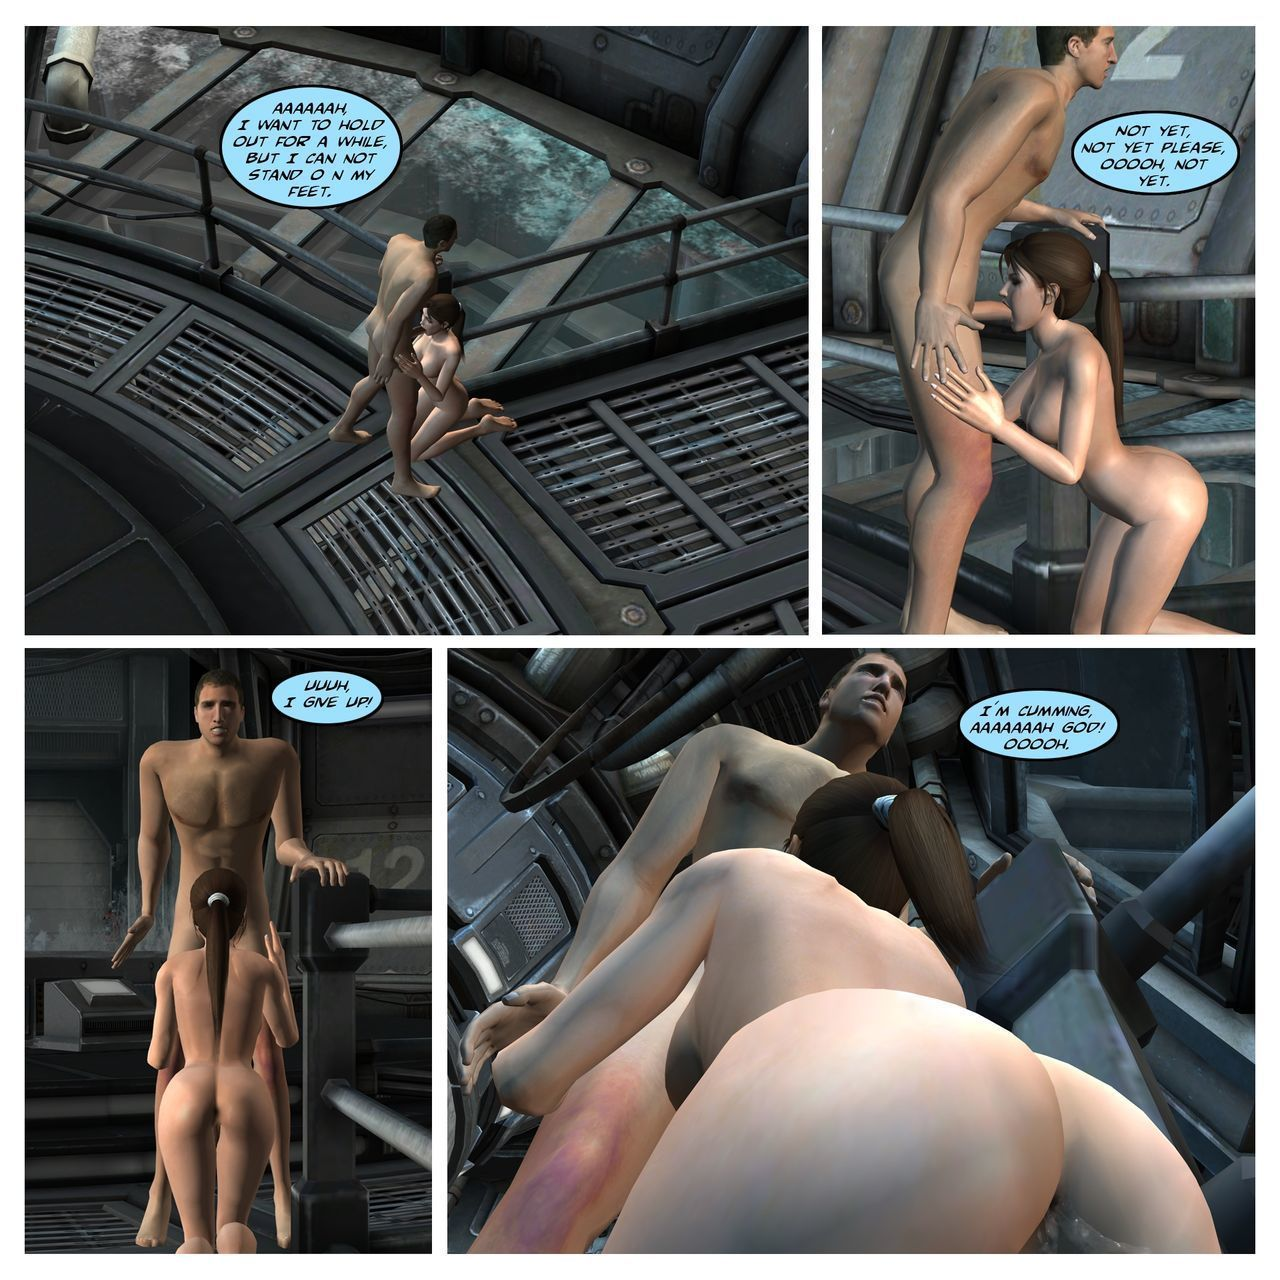 Lady & Stone Statue - Sexual Story Part III of III - part 2